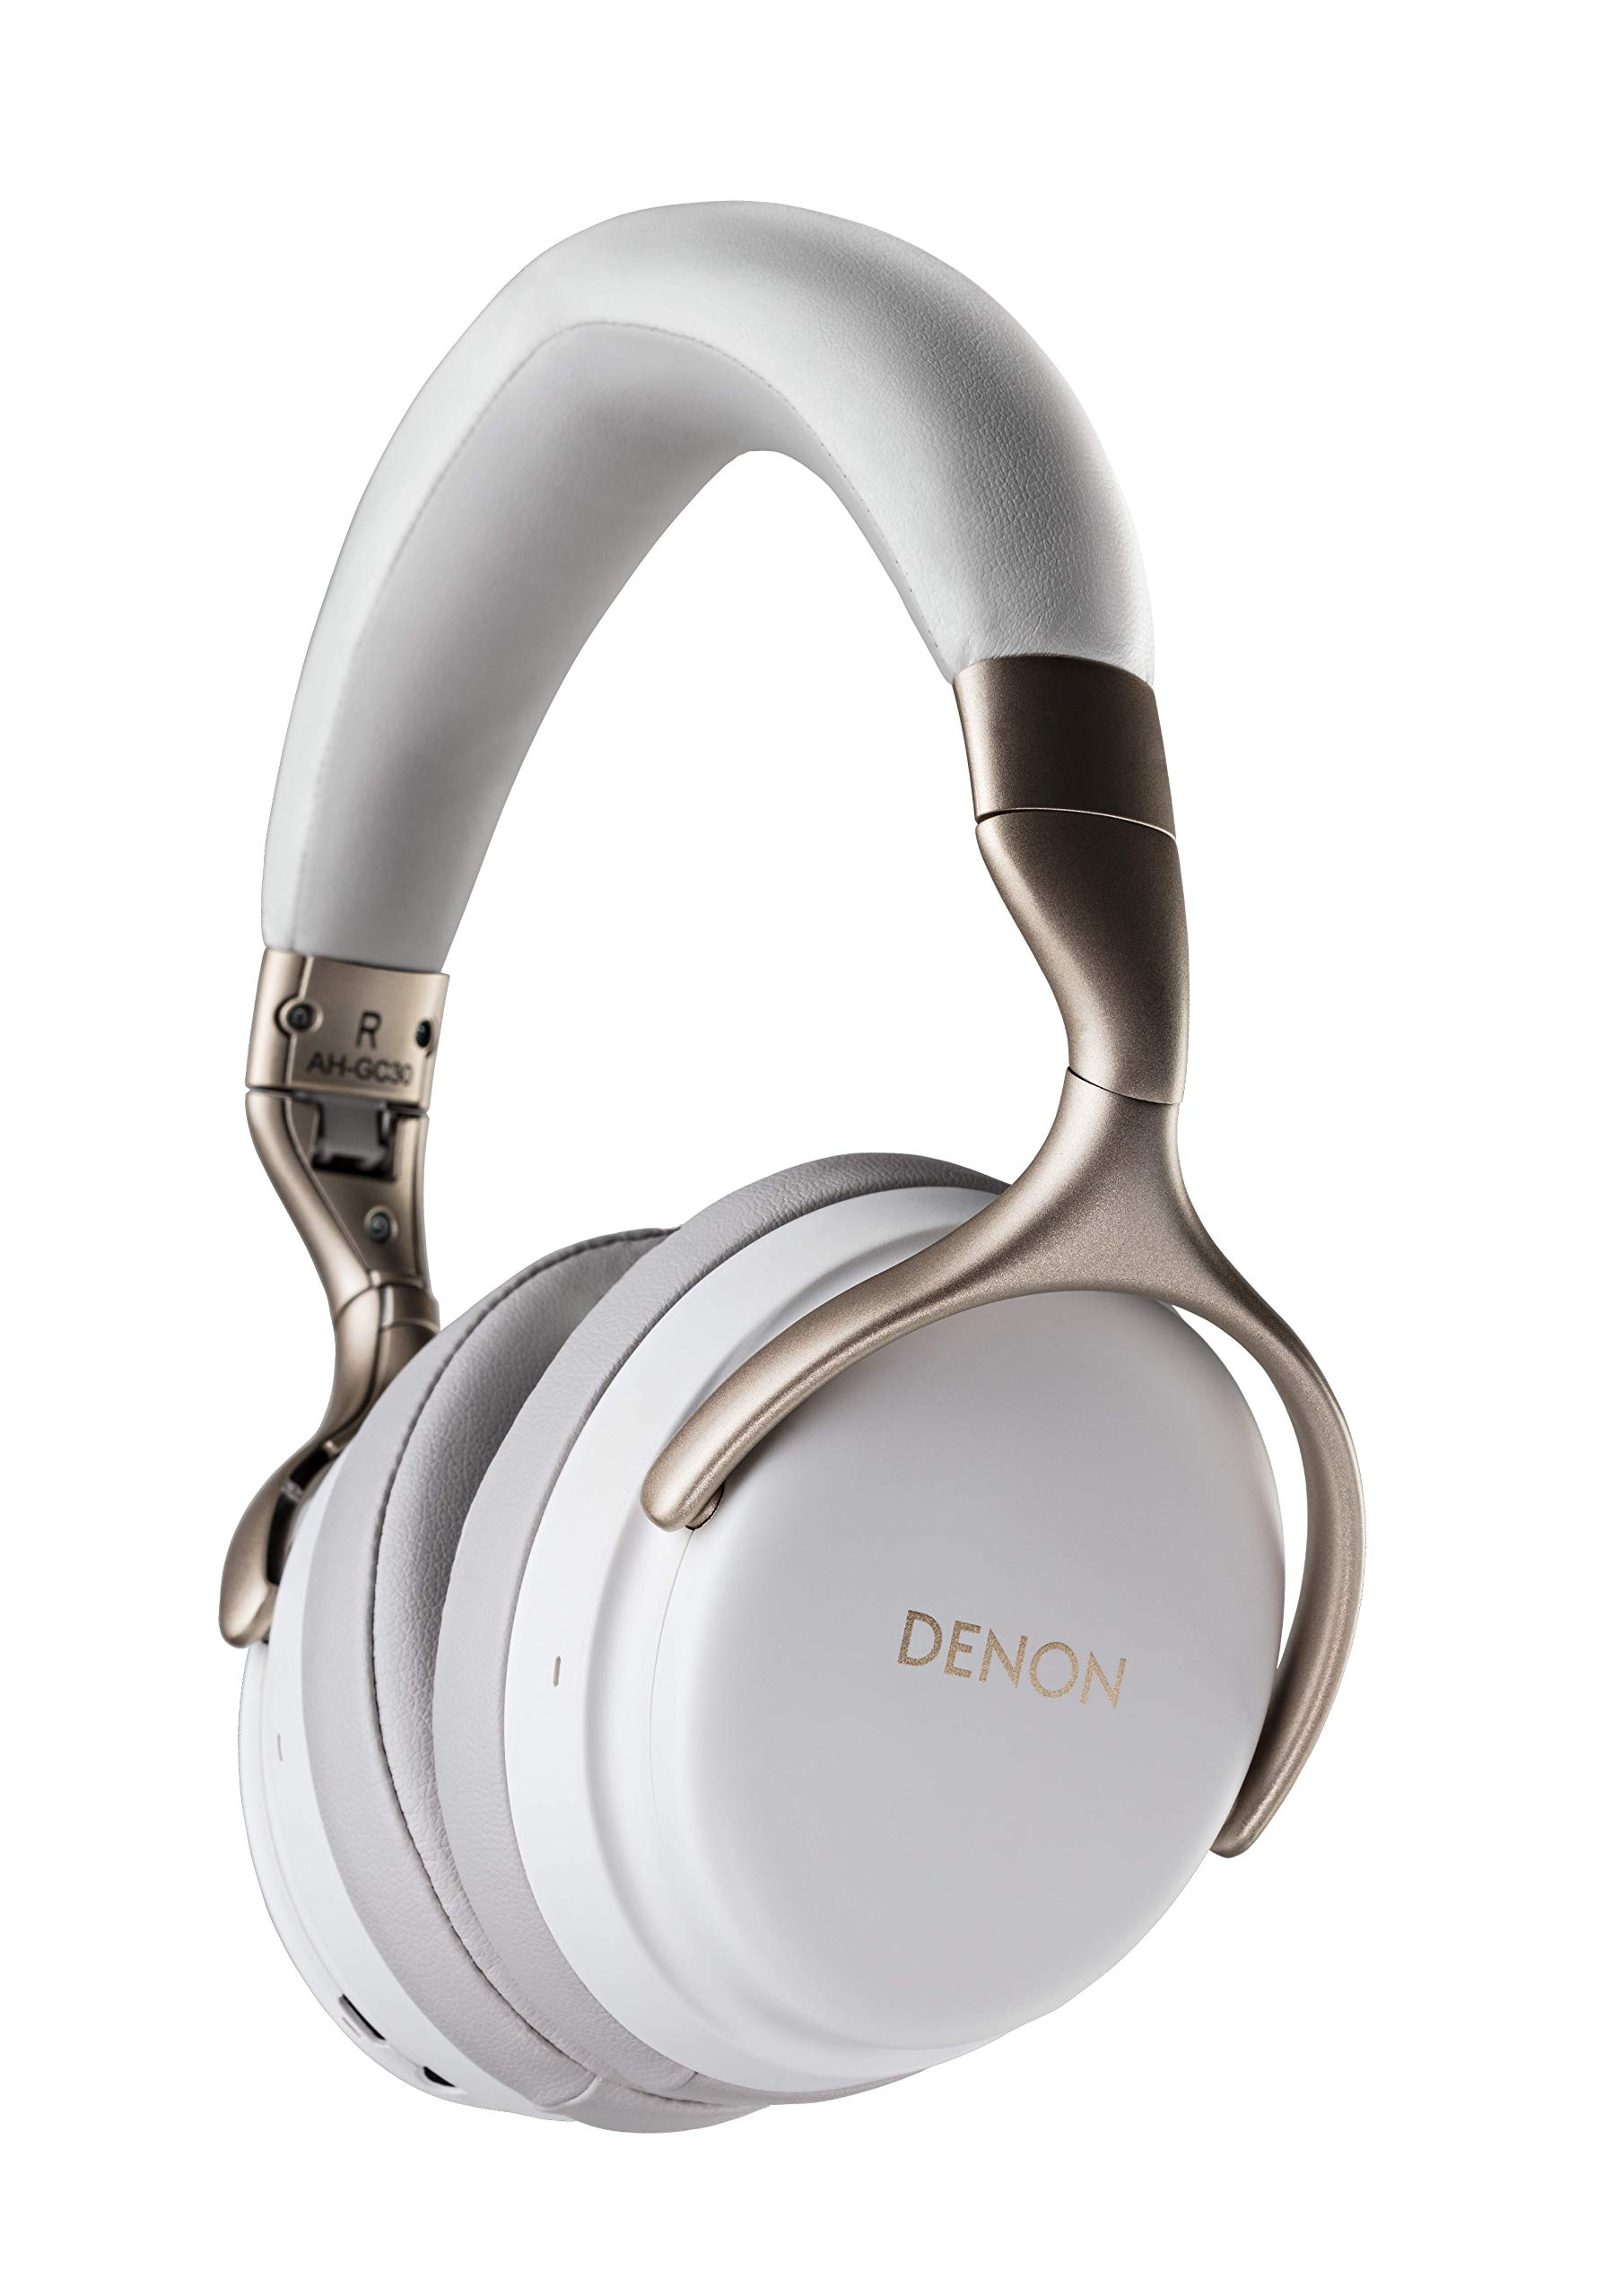 Denon AH-GC30 Premium Wireless Noise-Cancelling Headphones - Hi-Res Audio Quality | Up to 20 Hours of Extended Use | Designed for Comfort | Battery-Saving Auto-Standby Mode | White